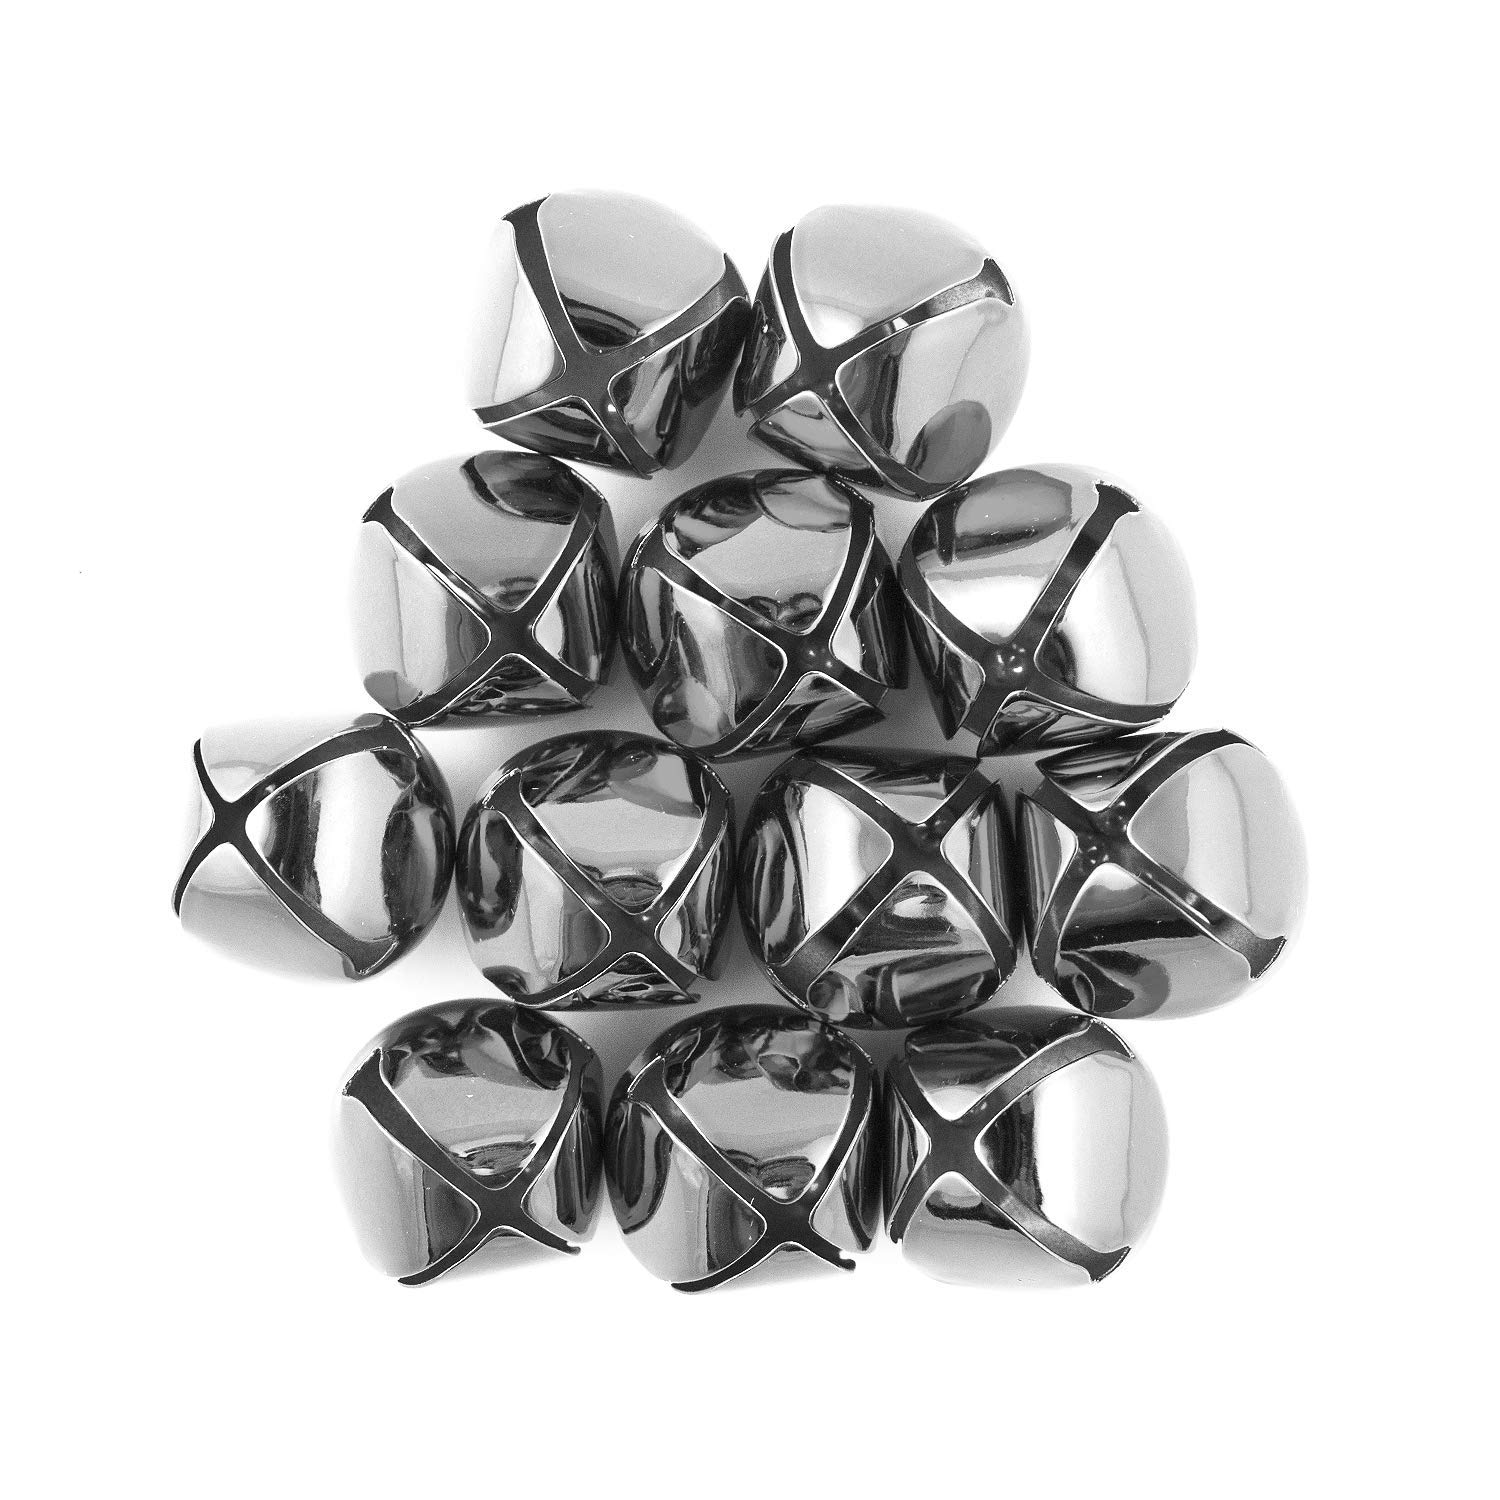 1.25 inch 30mm Large Silver Jingle Bells Bulk 100 Pieces